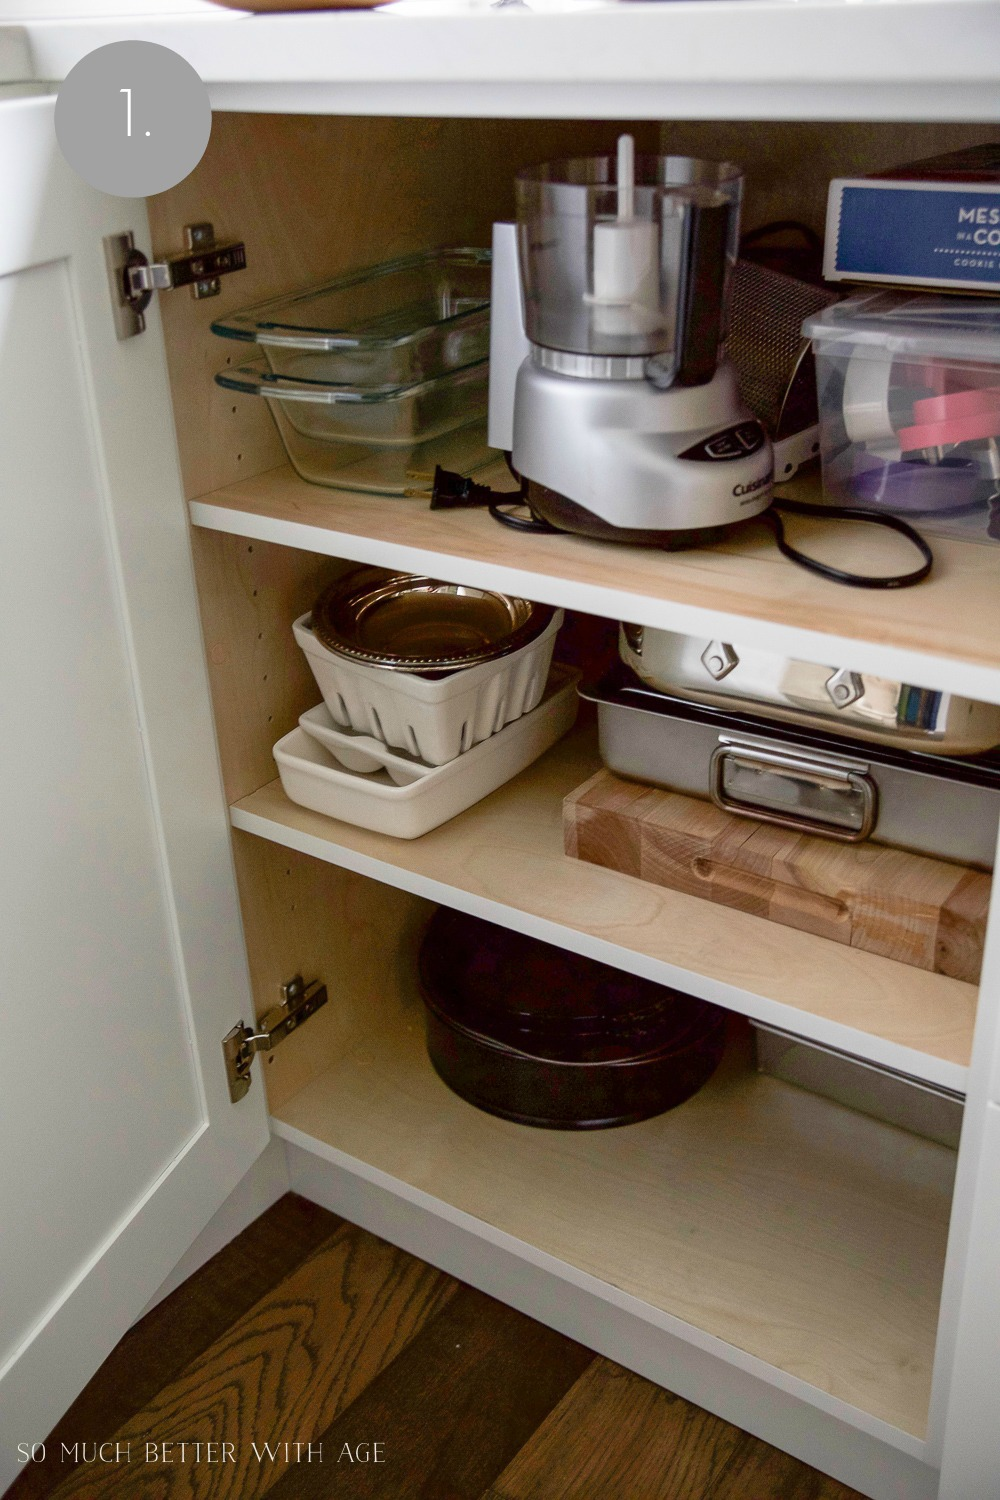 Kitchen cupboard and drawer organization / inside the kitchen cabinets - So Much Better With Age